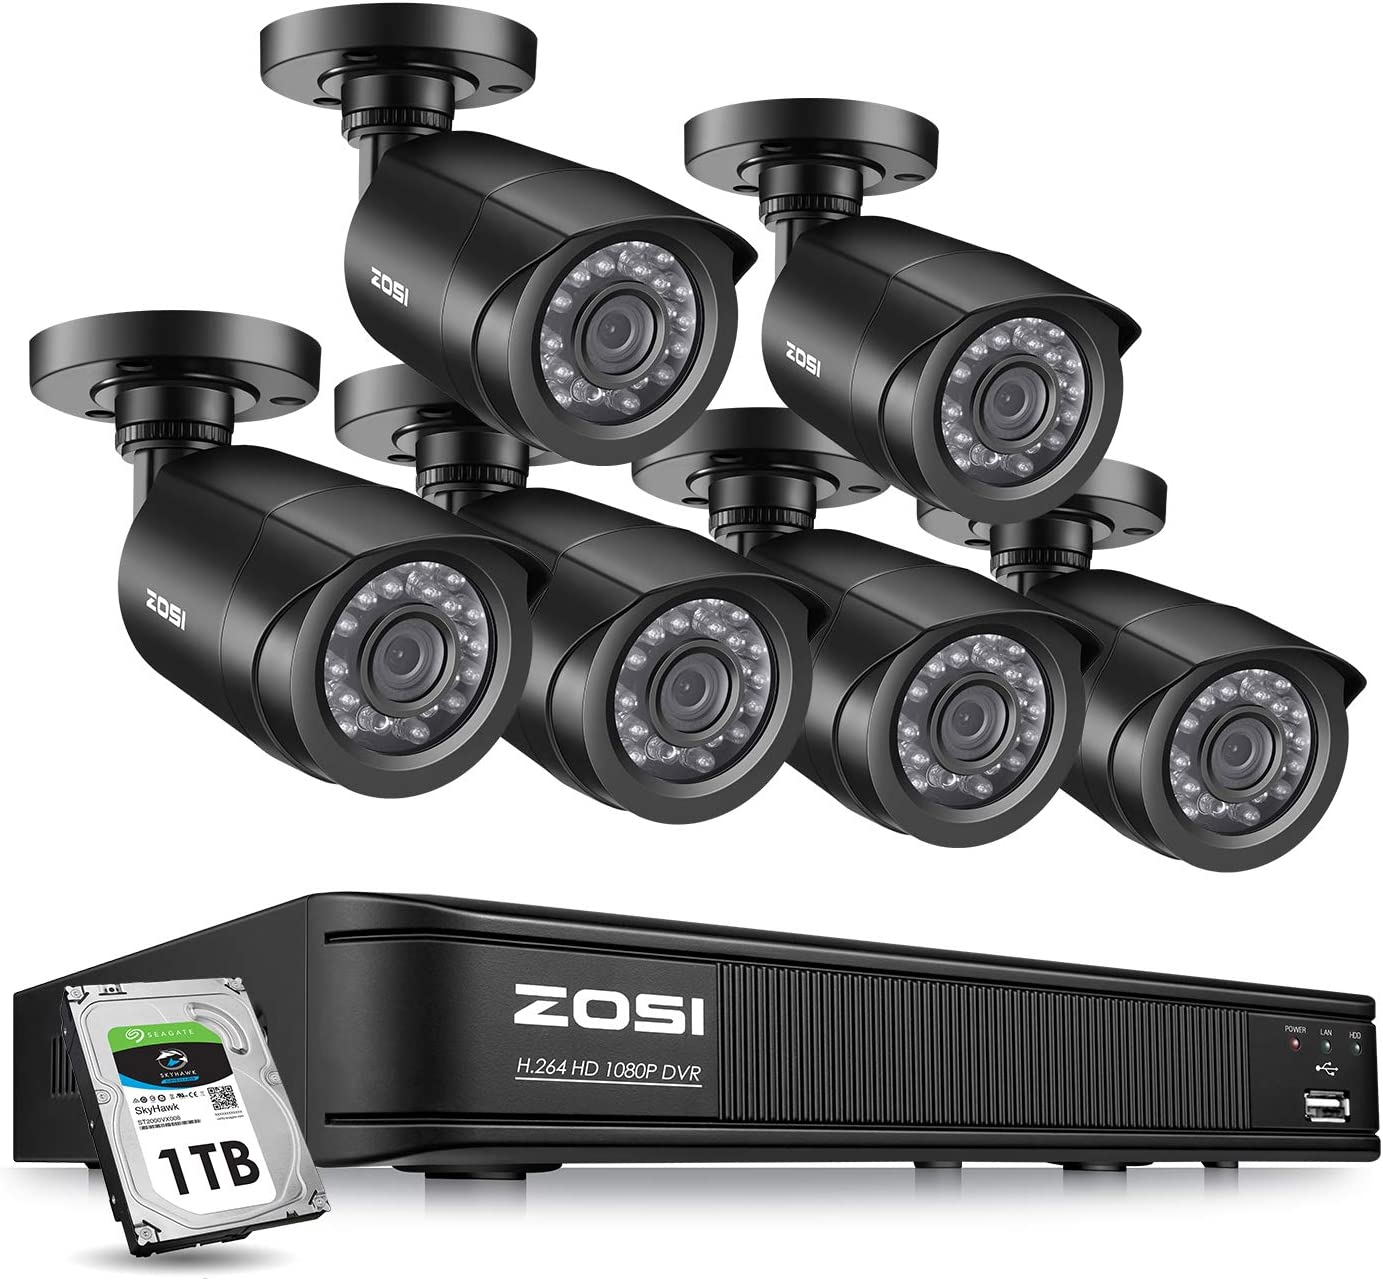 ZOSI 1080P Home Security Camera System Indoor outdoor, 2MP CCTV DVR 8 Channel with Hard Drive 1TB and 6 x 1080P Surveillance Bullet Camera Outside,Remote Access,Motion Detection